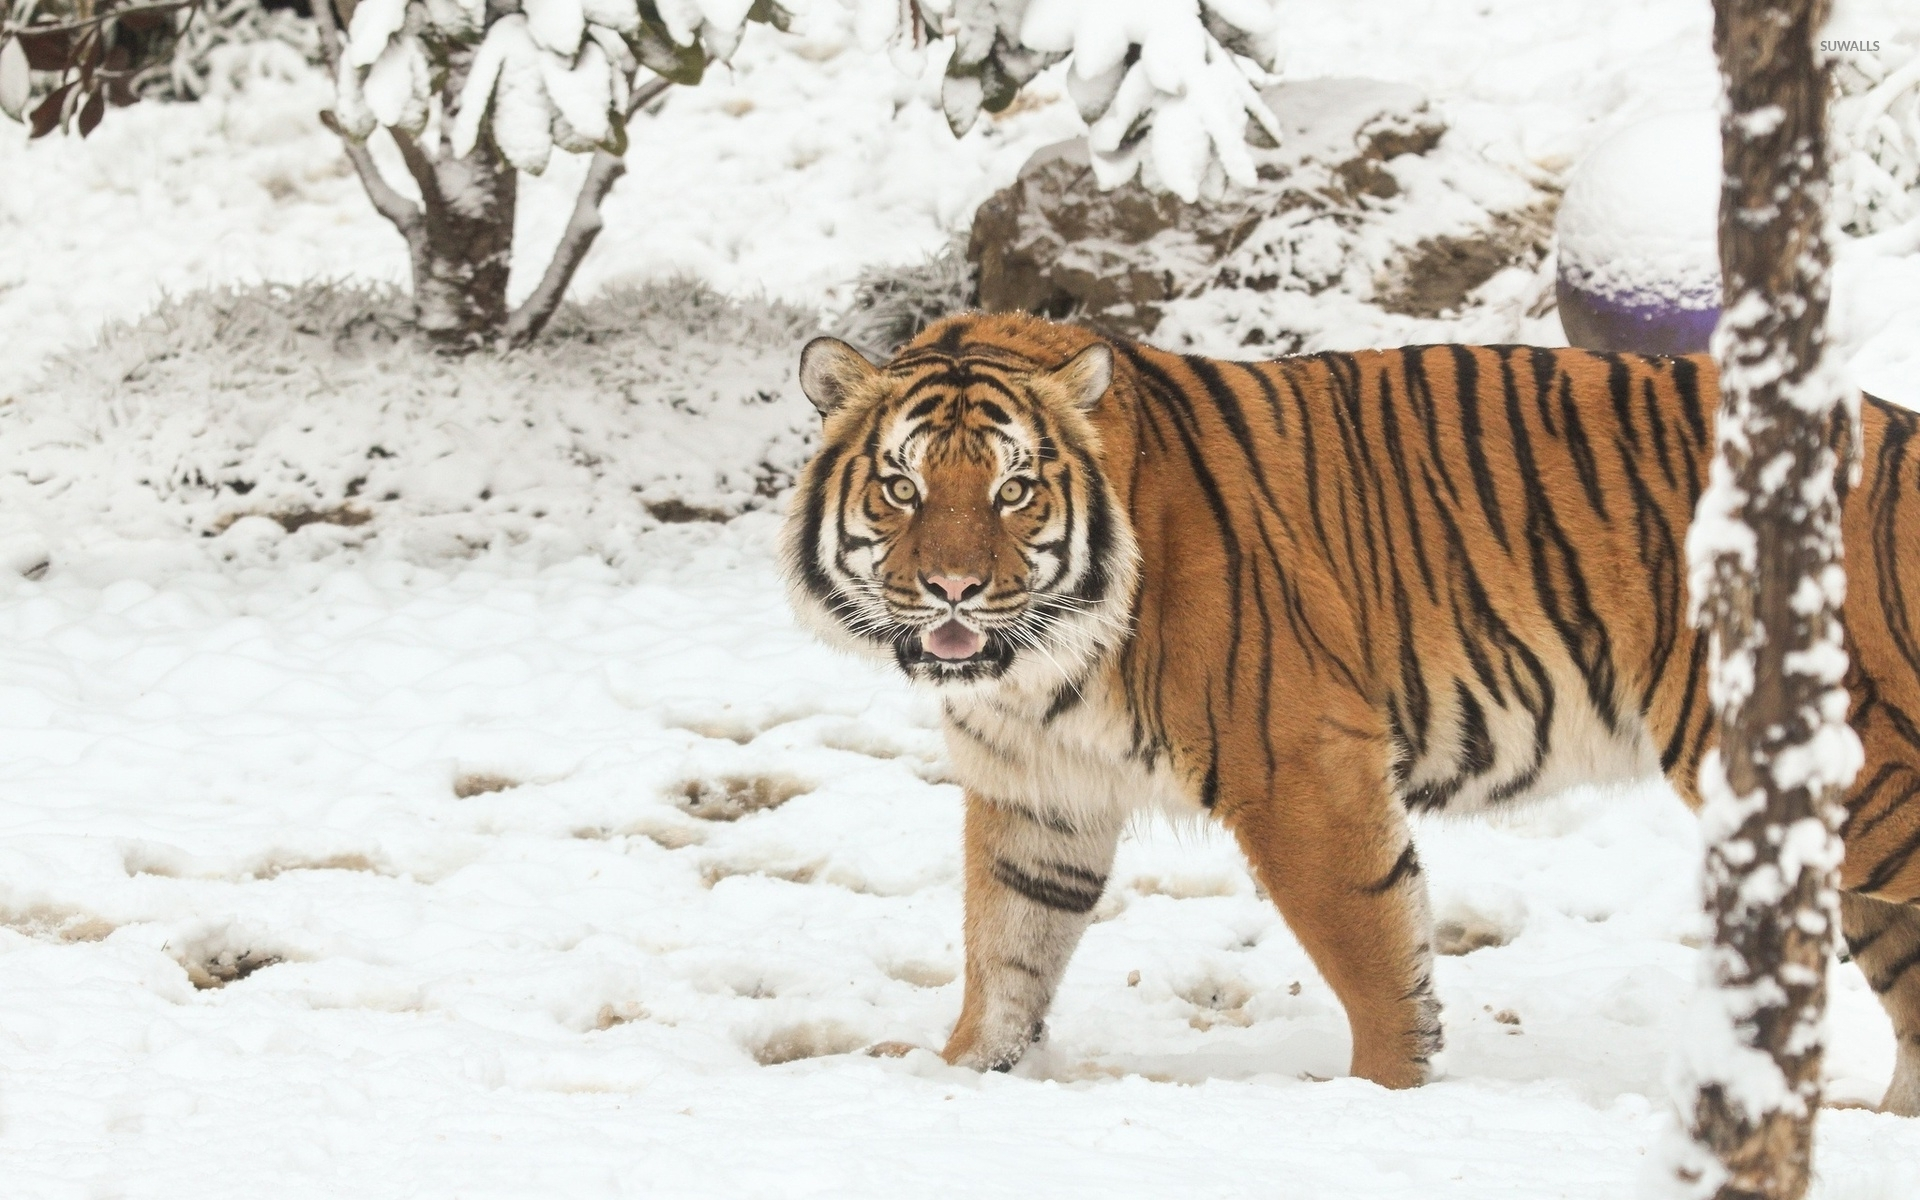 Majestic tiger in the snow wallpaper - Animal wallpapers - #47206